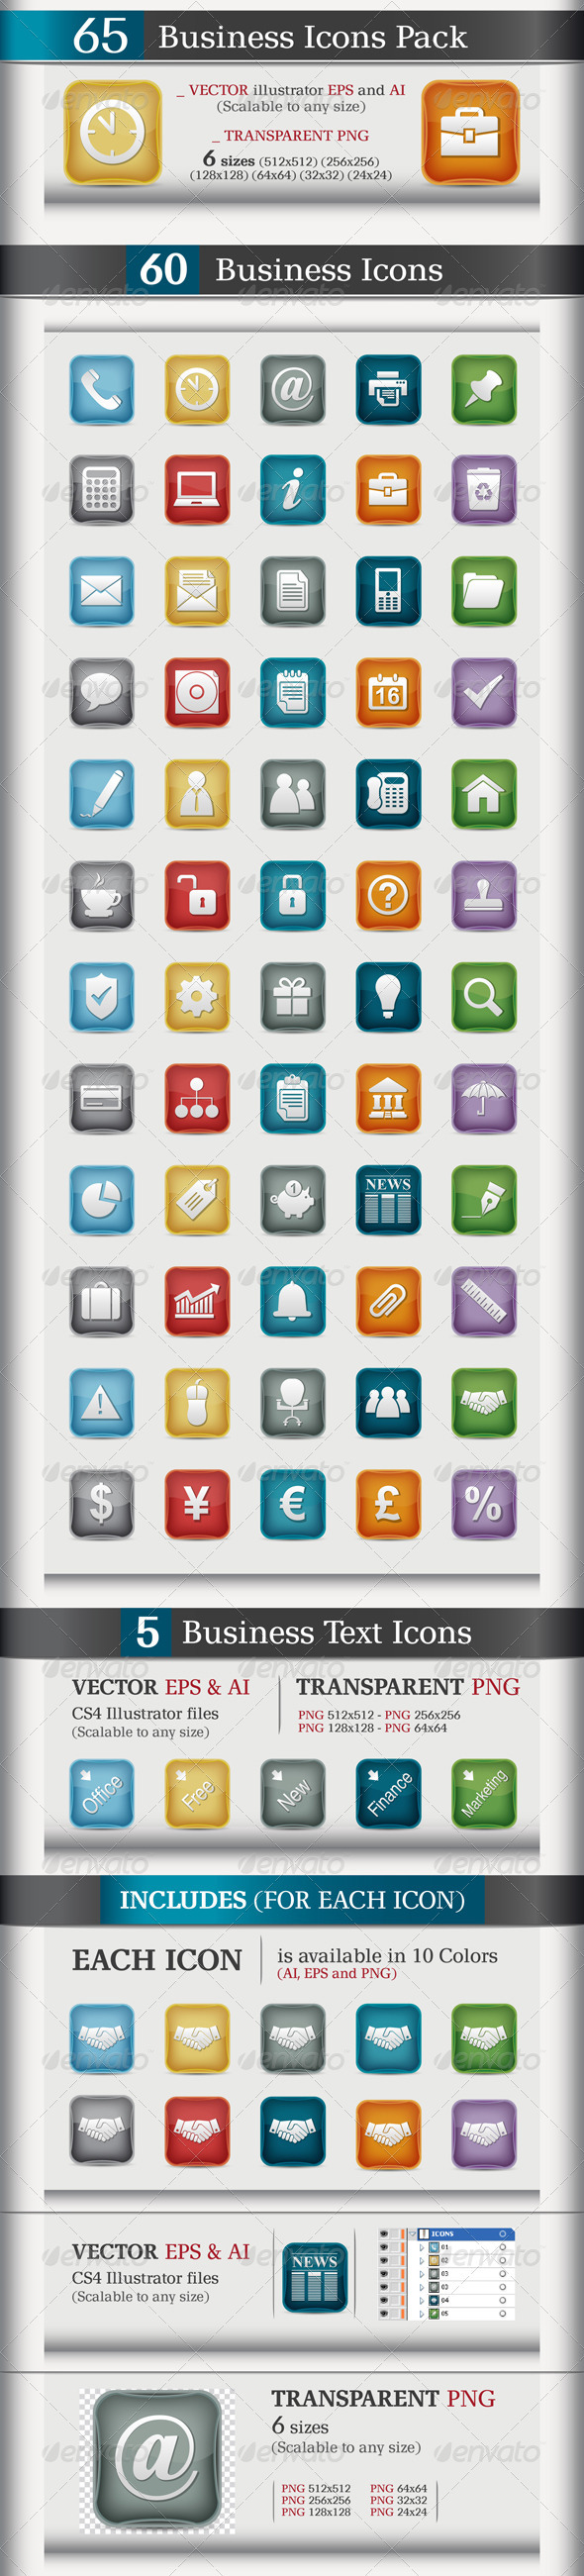 65 Business Icons Pack - Business Icons